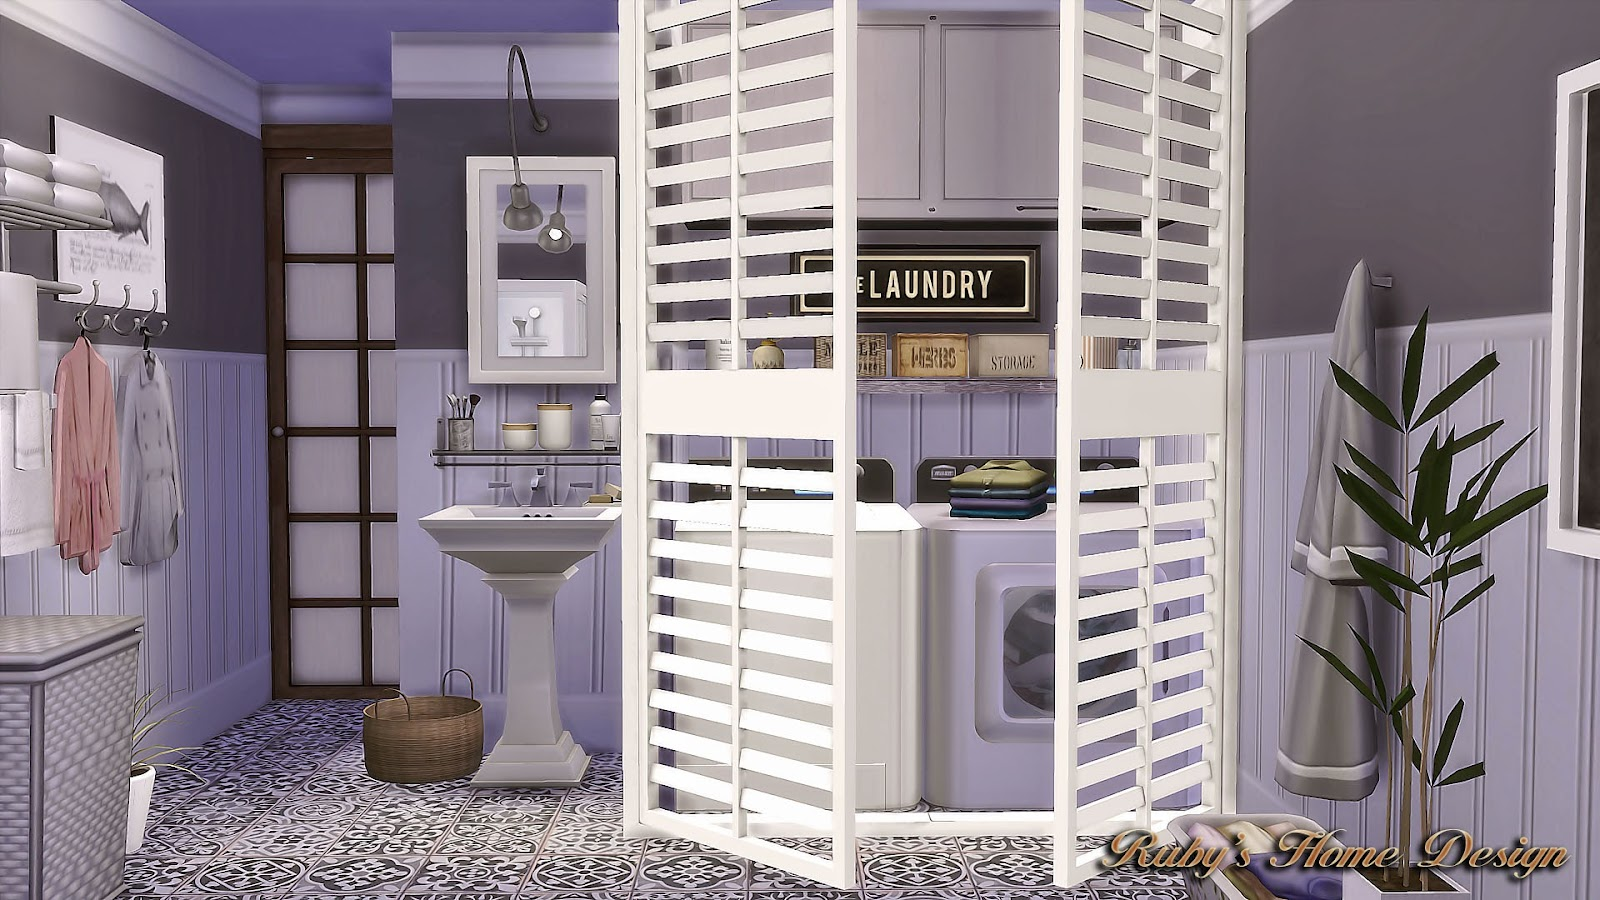 Sims4 Laundry Room Wall Panels 壁紙 - Ruby's Home Design